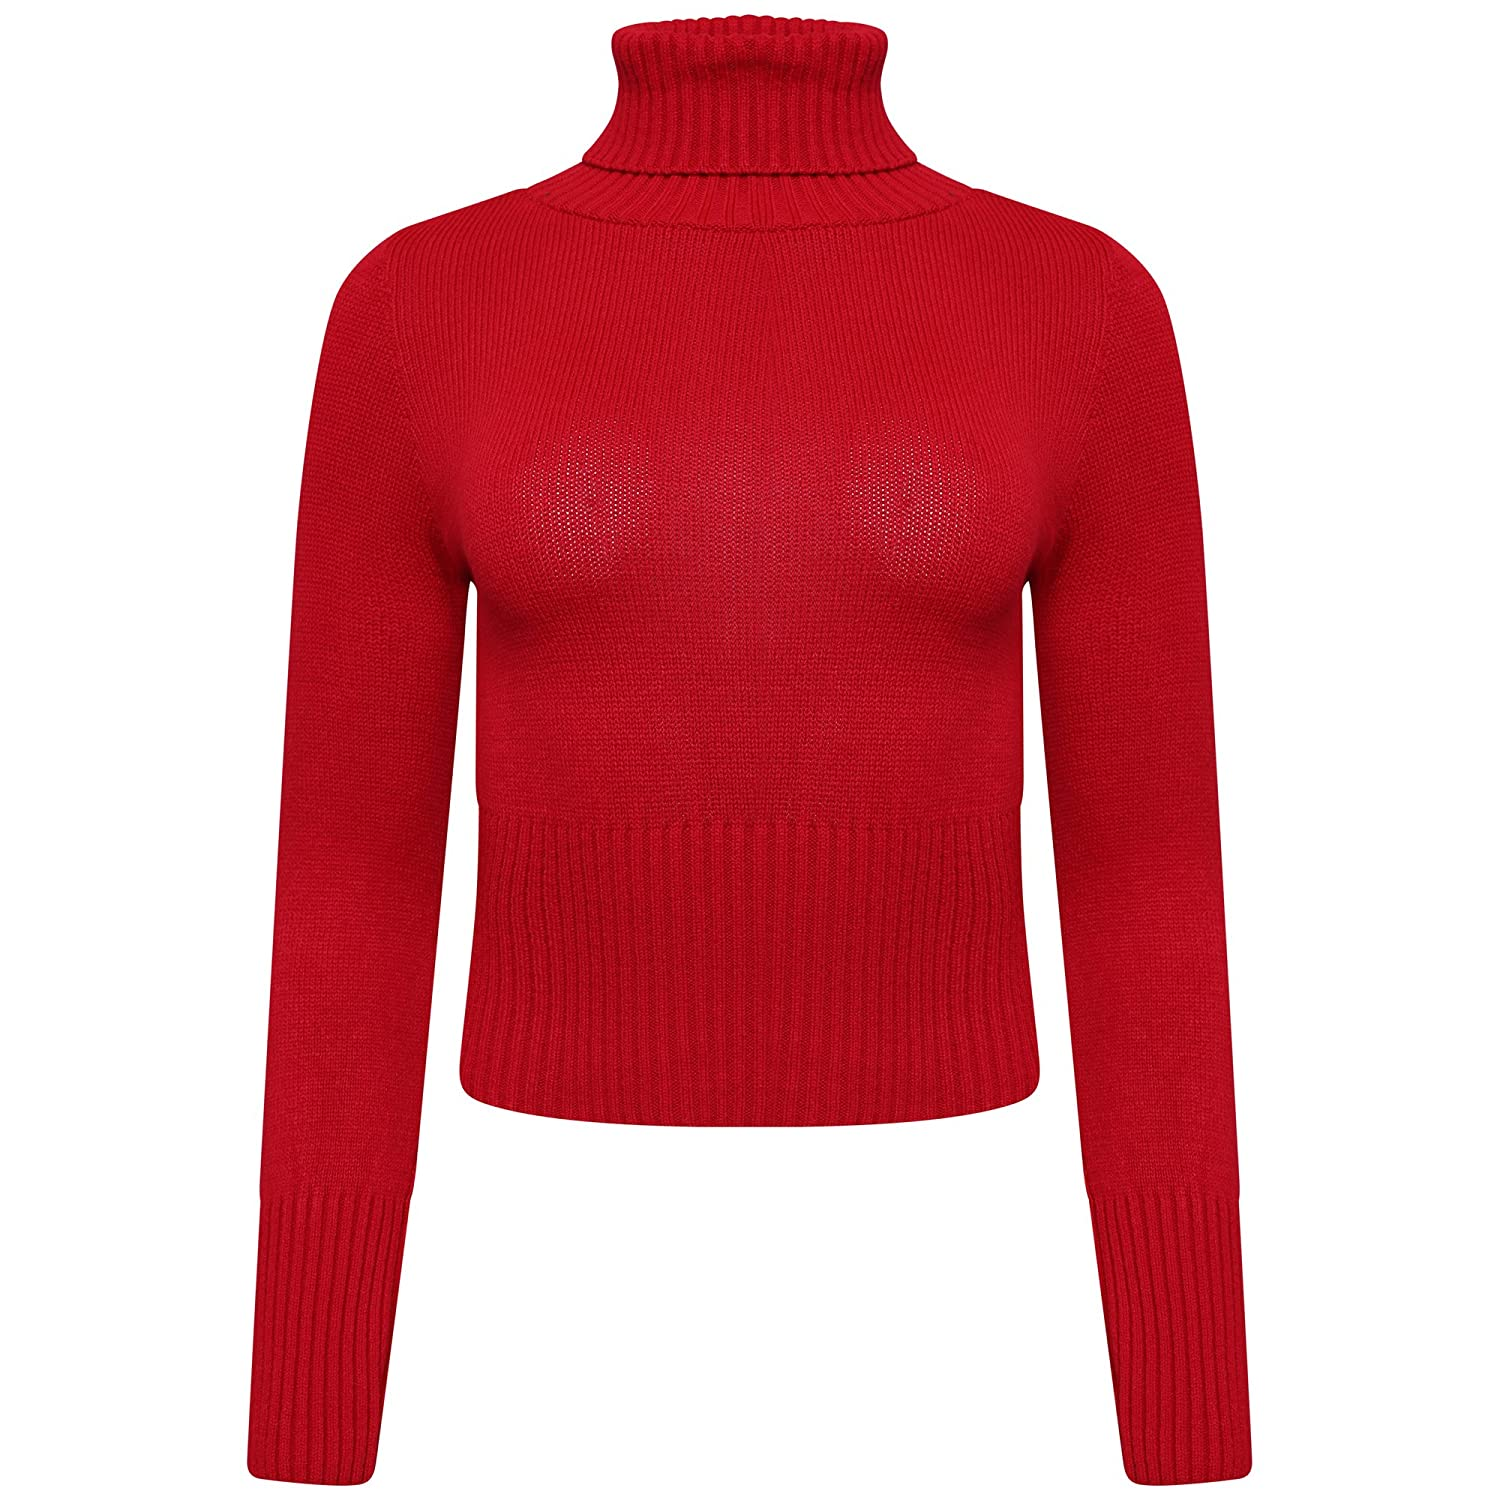 GirlzWalk Long Sleeve Polo Turtle Neck Chunky Cable Knitted Crop TOP Knit Jumper